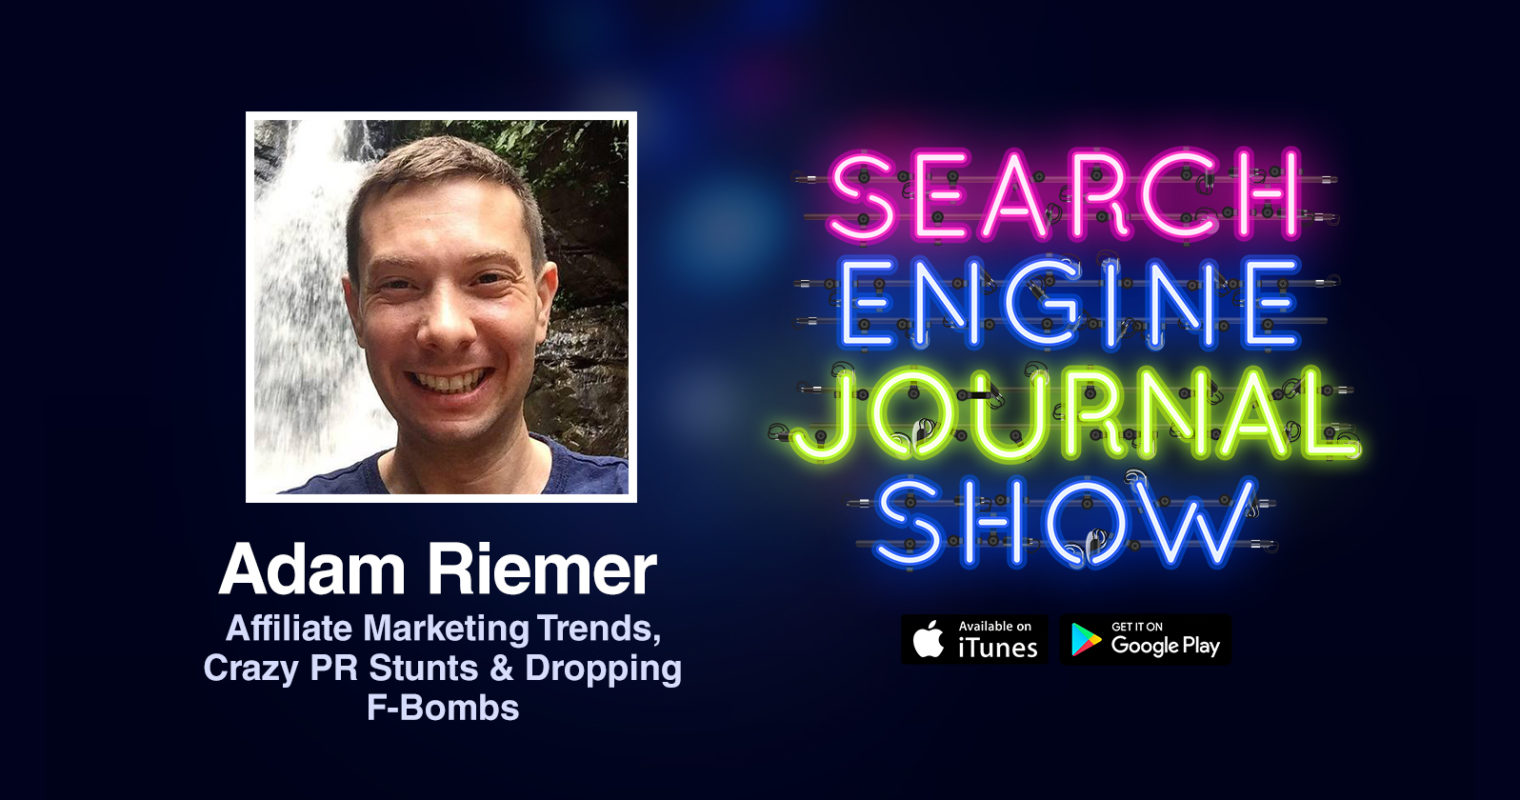 Affiliate Marketing Trends, Crazy PR Stunts & Dropping F-Bombs with Adam Riemer [PODCAST]